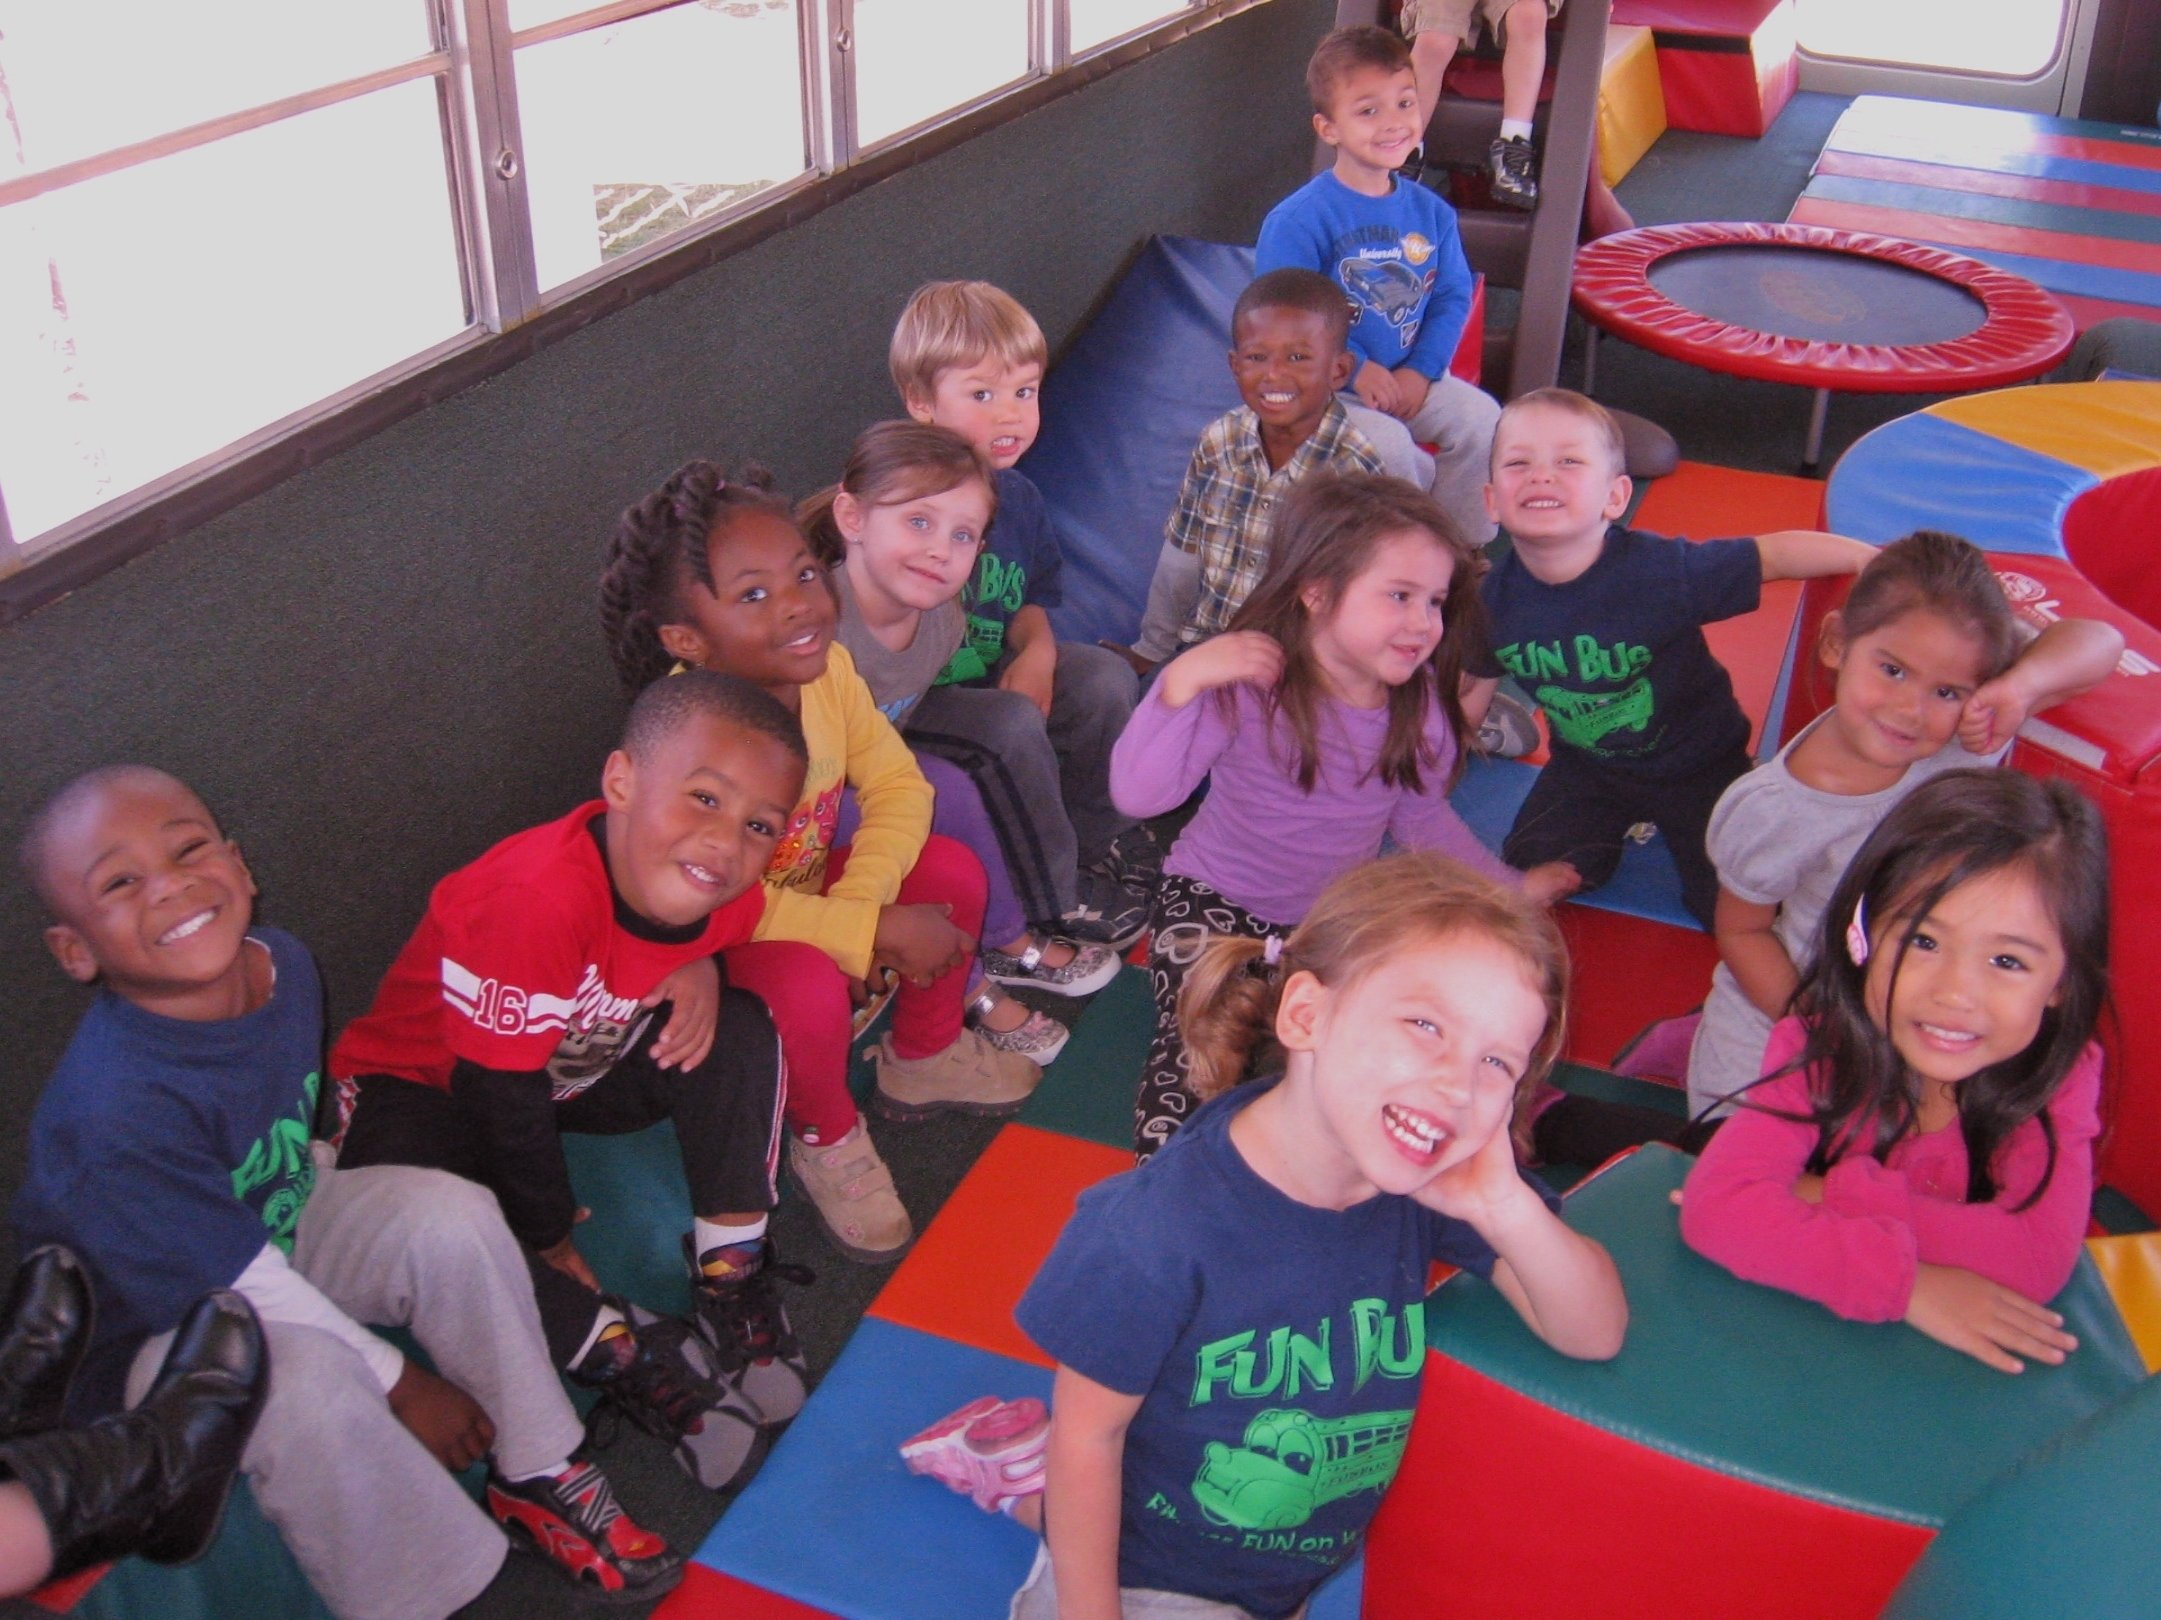 10 Awesome Kids Birthday Party Ideas Nj fun bus is best childrens birthday party idea in old bridge 2020